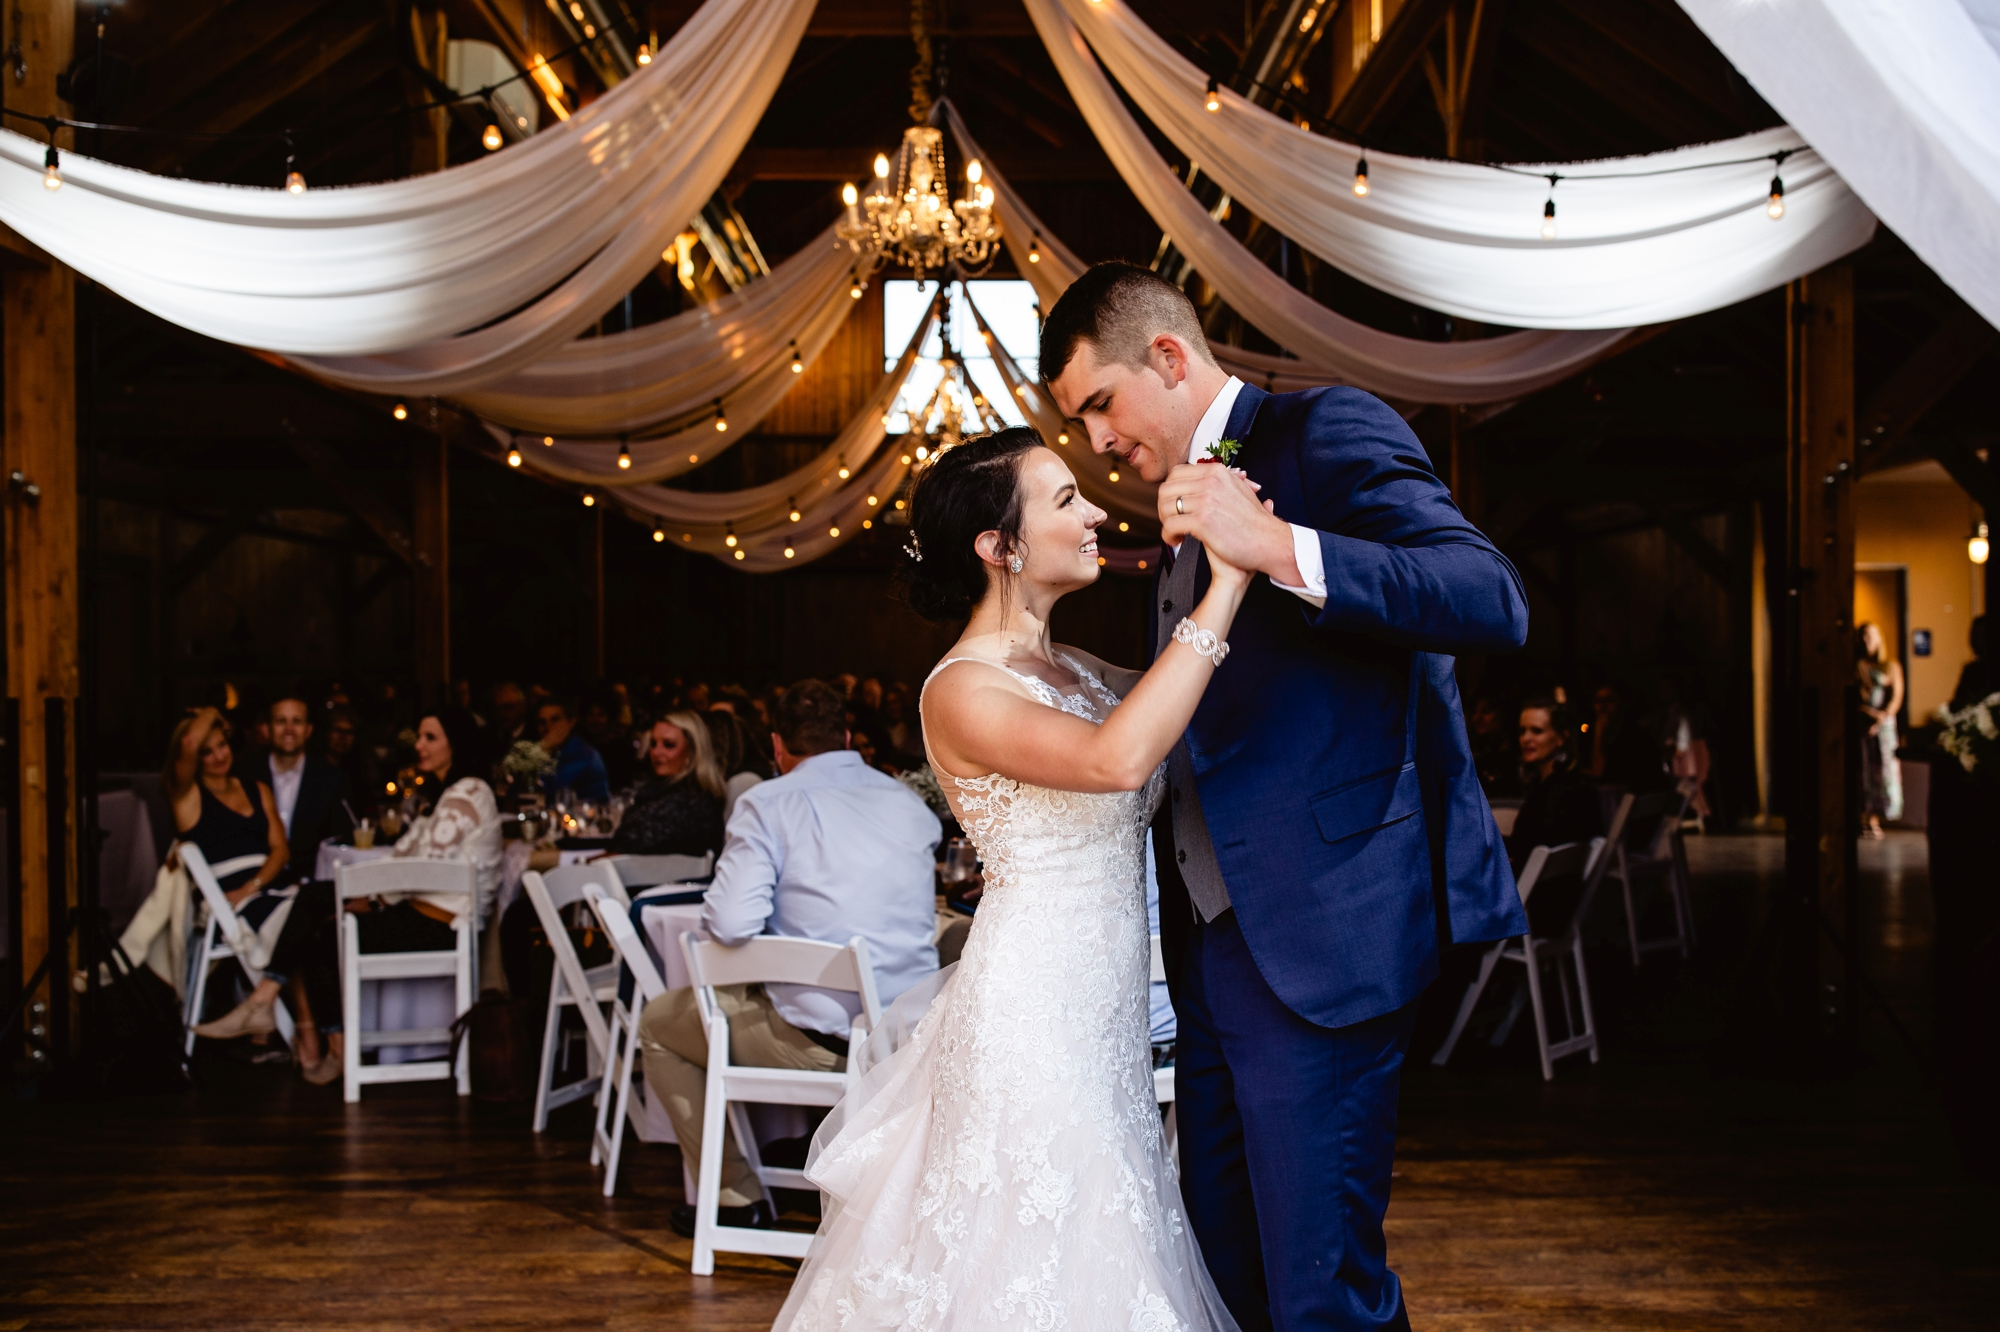 Fall Wedding At The Big Red Barn in 2020 | Red barn ...